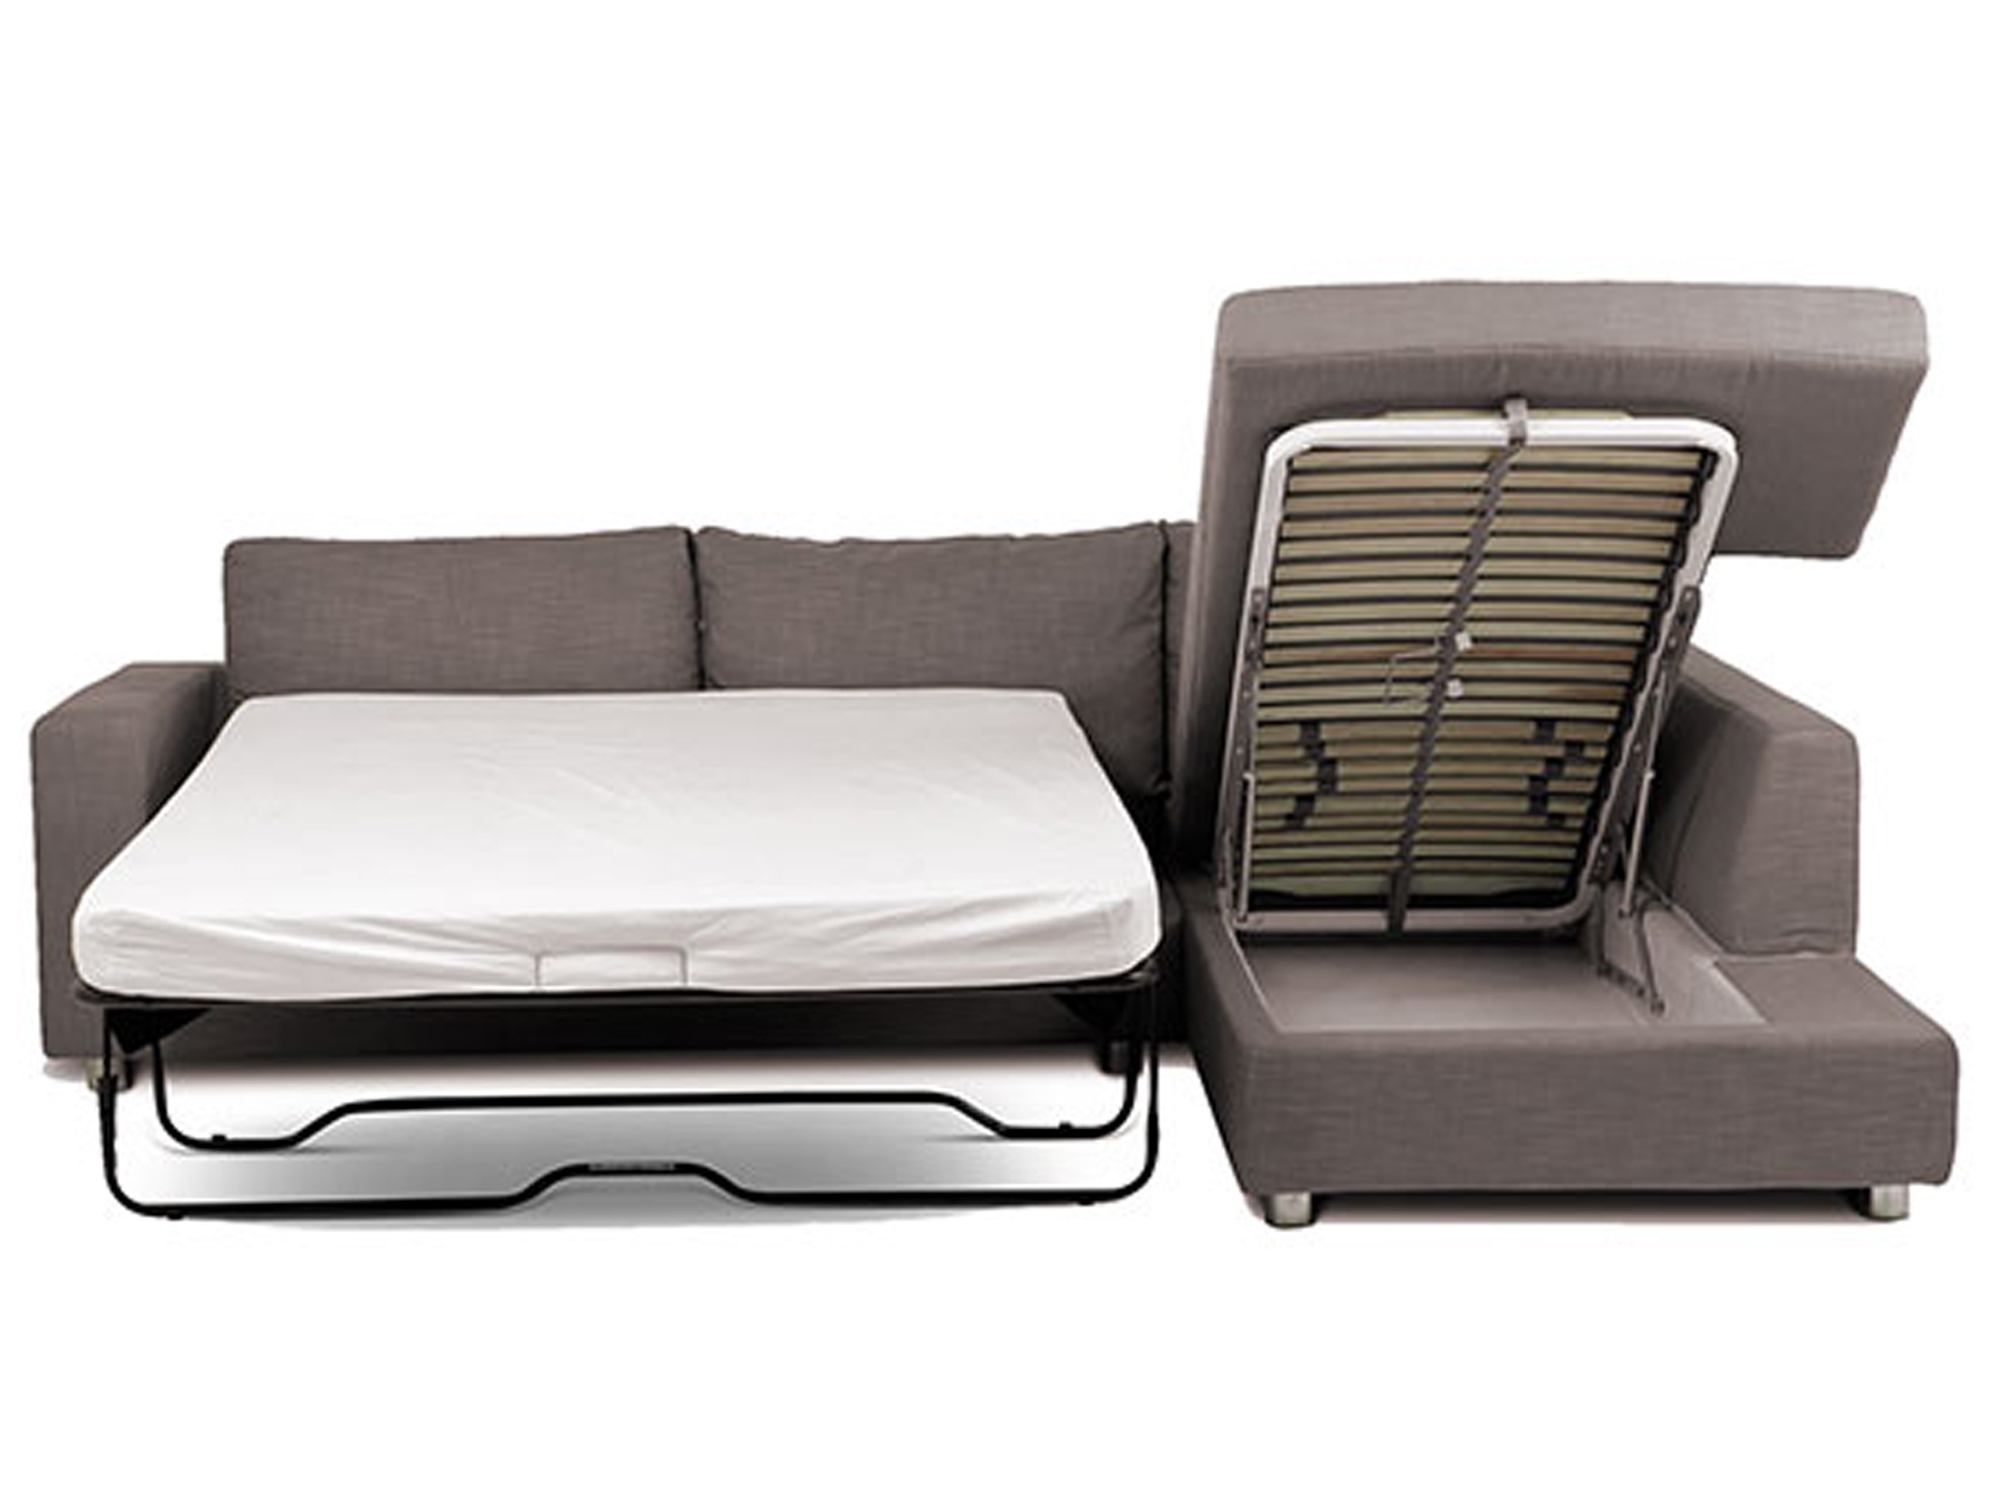 A Corner Sofa Bed For Your Home – Goodworksfurniture Within Most Popular Chaise Lounge Sofa Beds (View 12 of 15)